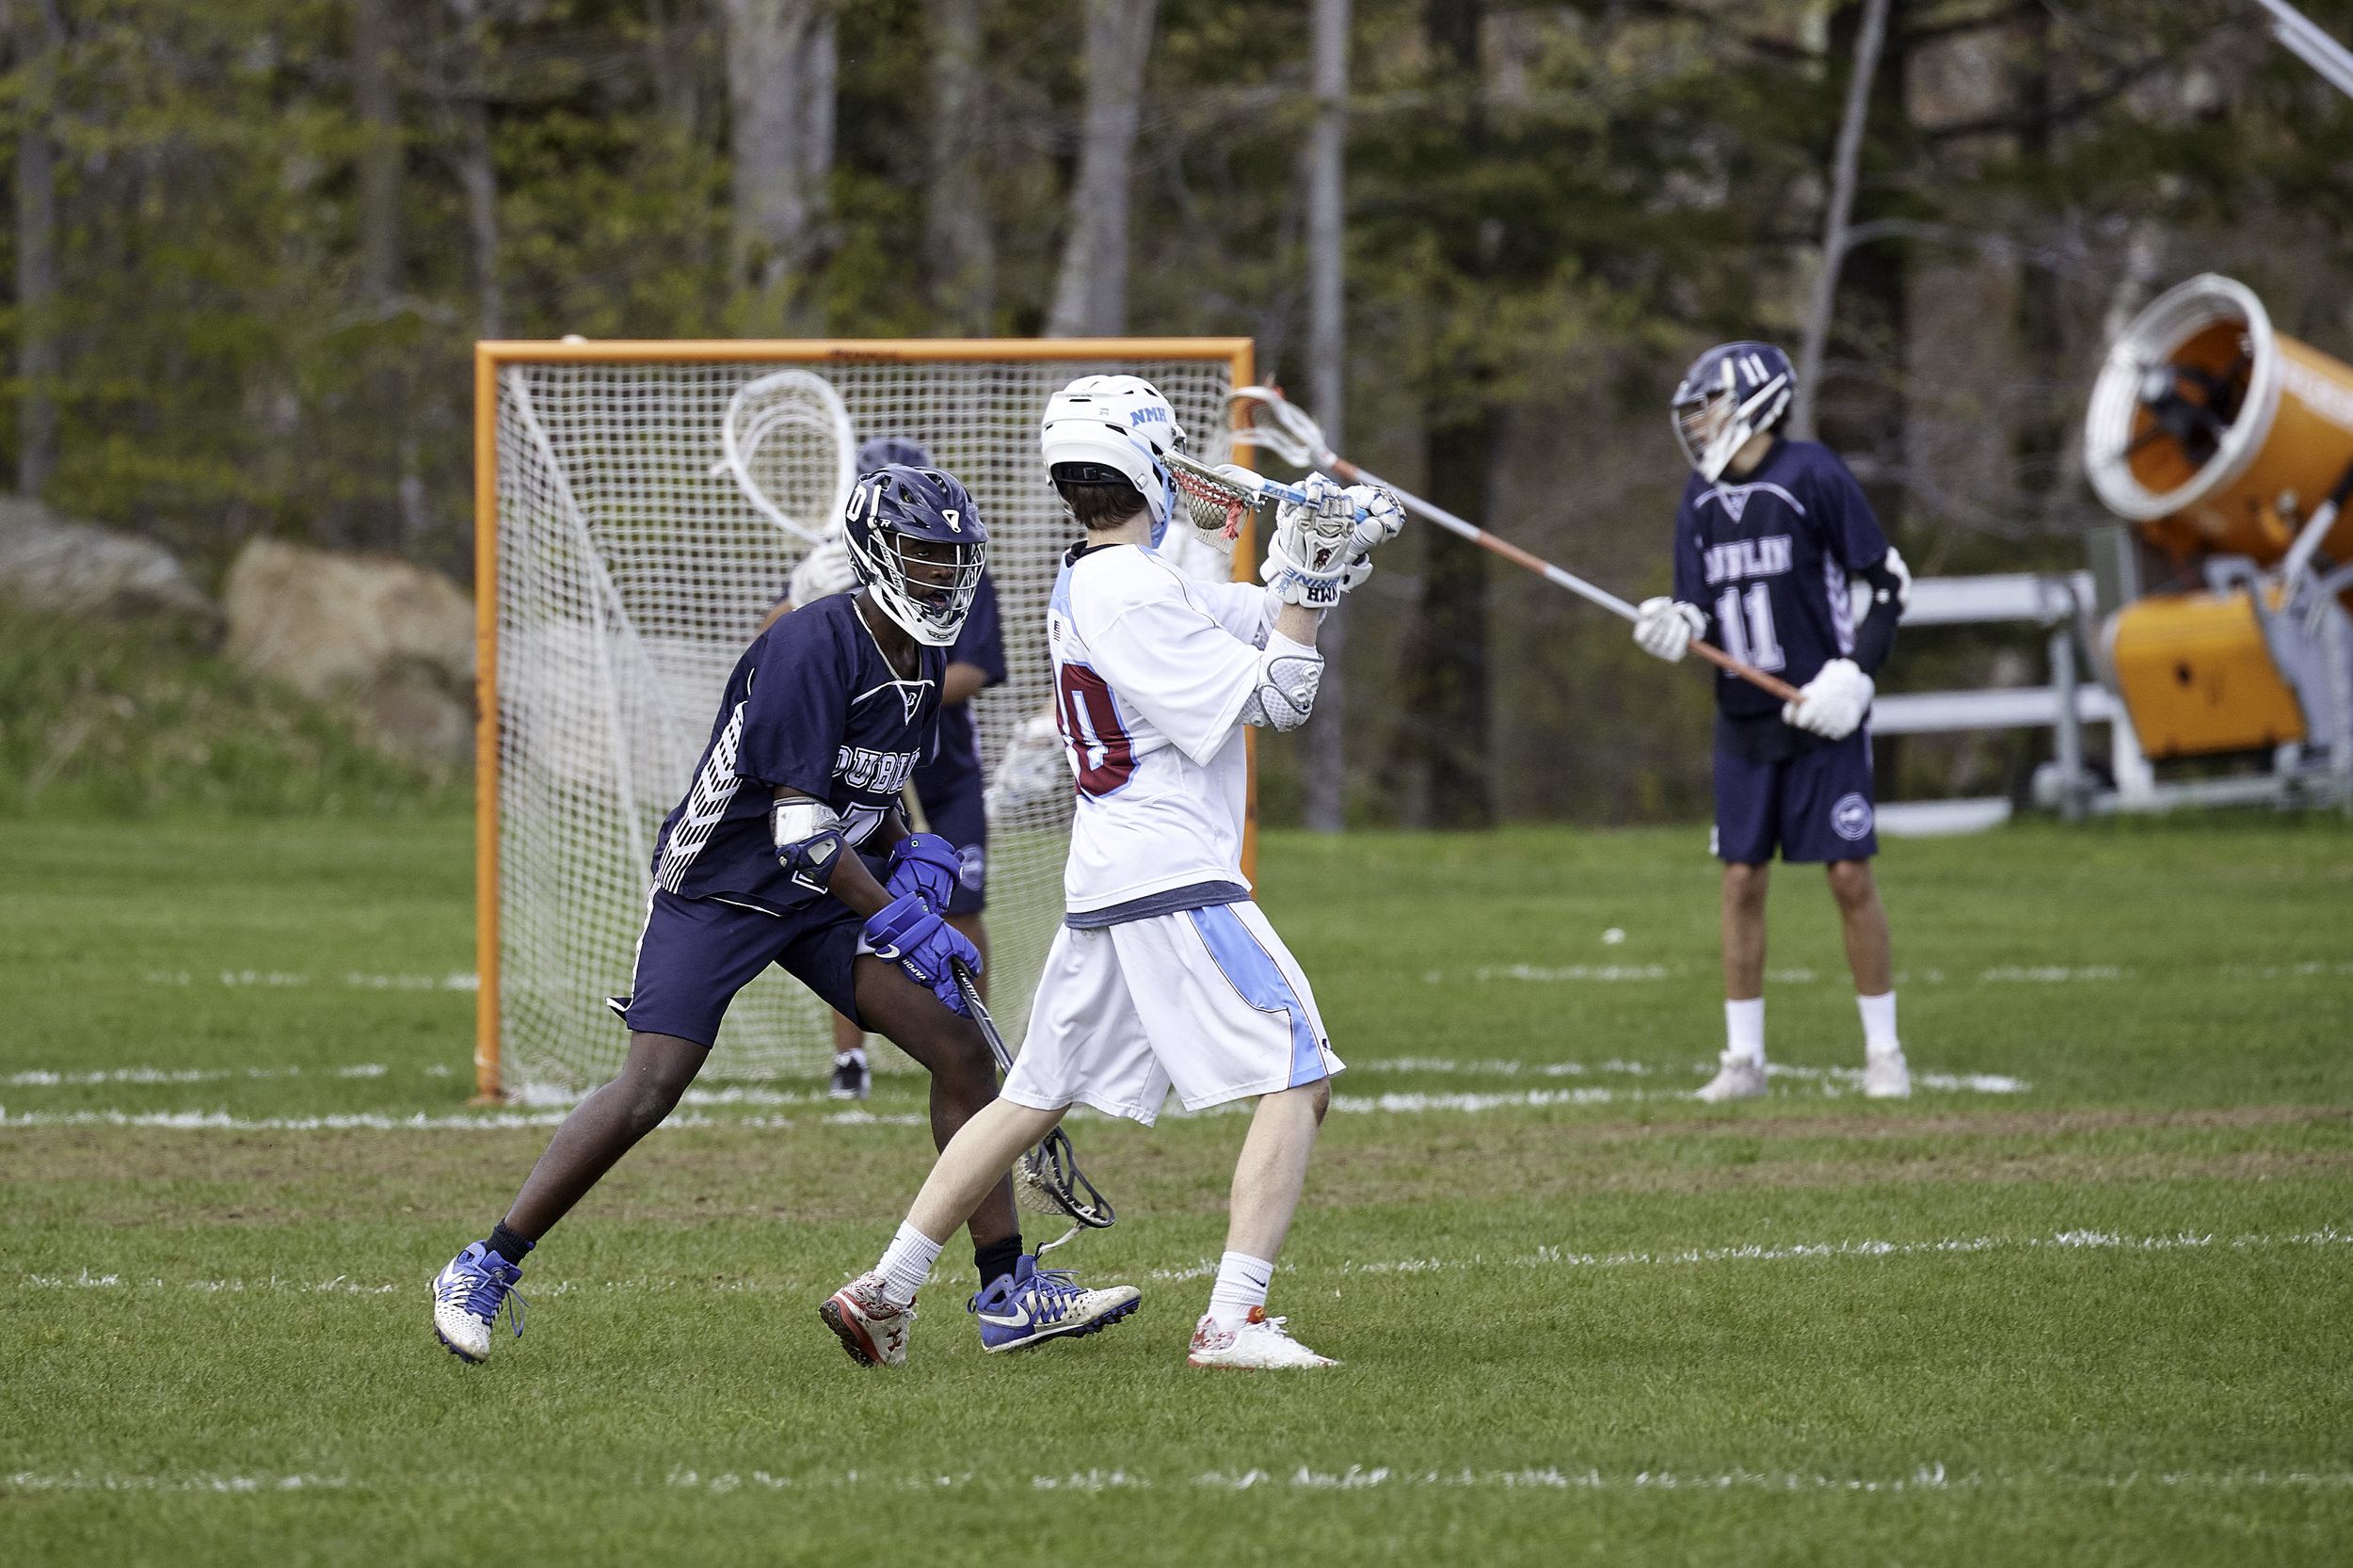 Boys Lax vs Northfield Mount Hermon JV - May 15 2019 - 0031.jpg